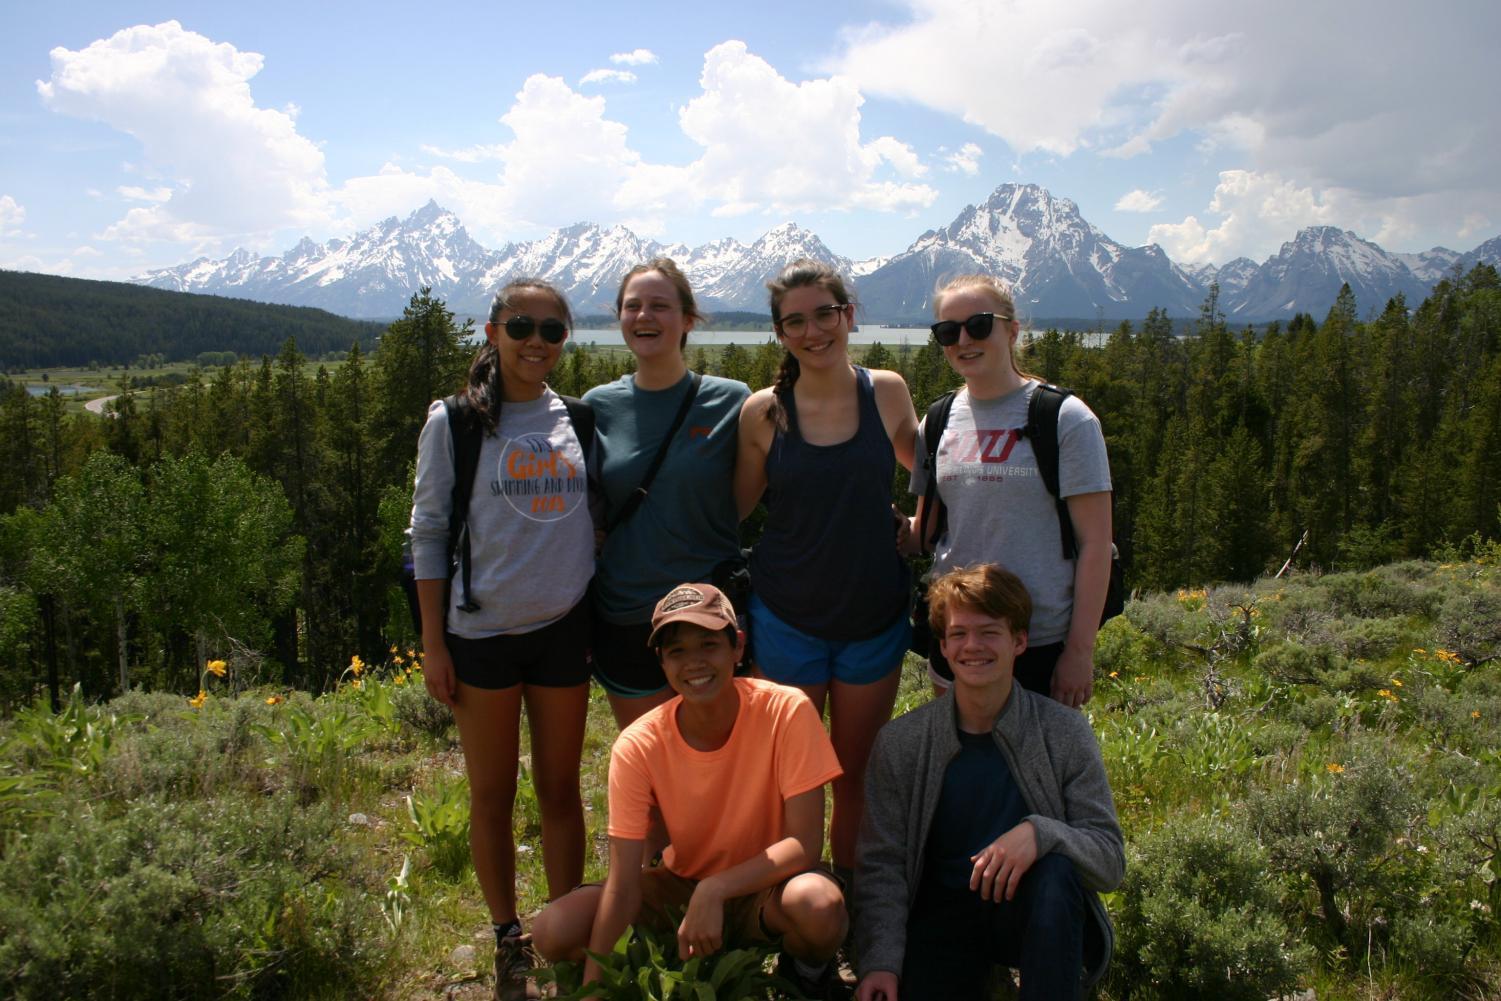 The students in front of the Grand Tetons. Top row (from left to right): Xuenan Jin, Julia Bautz, Liza Anzilotti, Dana Anderson. Bottom row (from left to right): Max de la Paz, Noah Kennedy